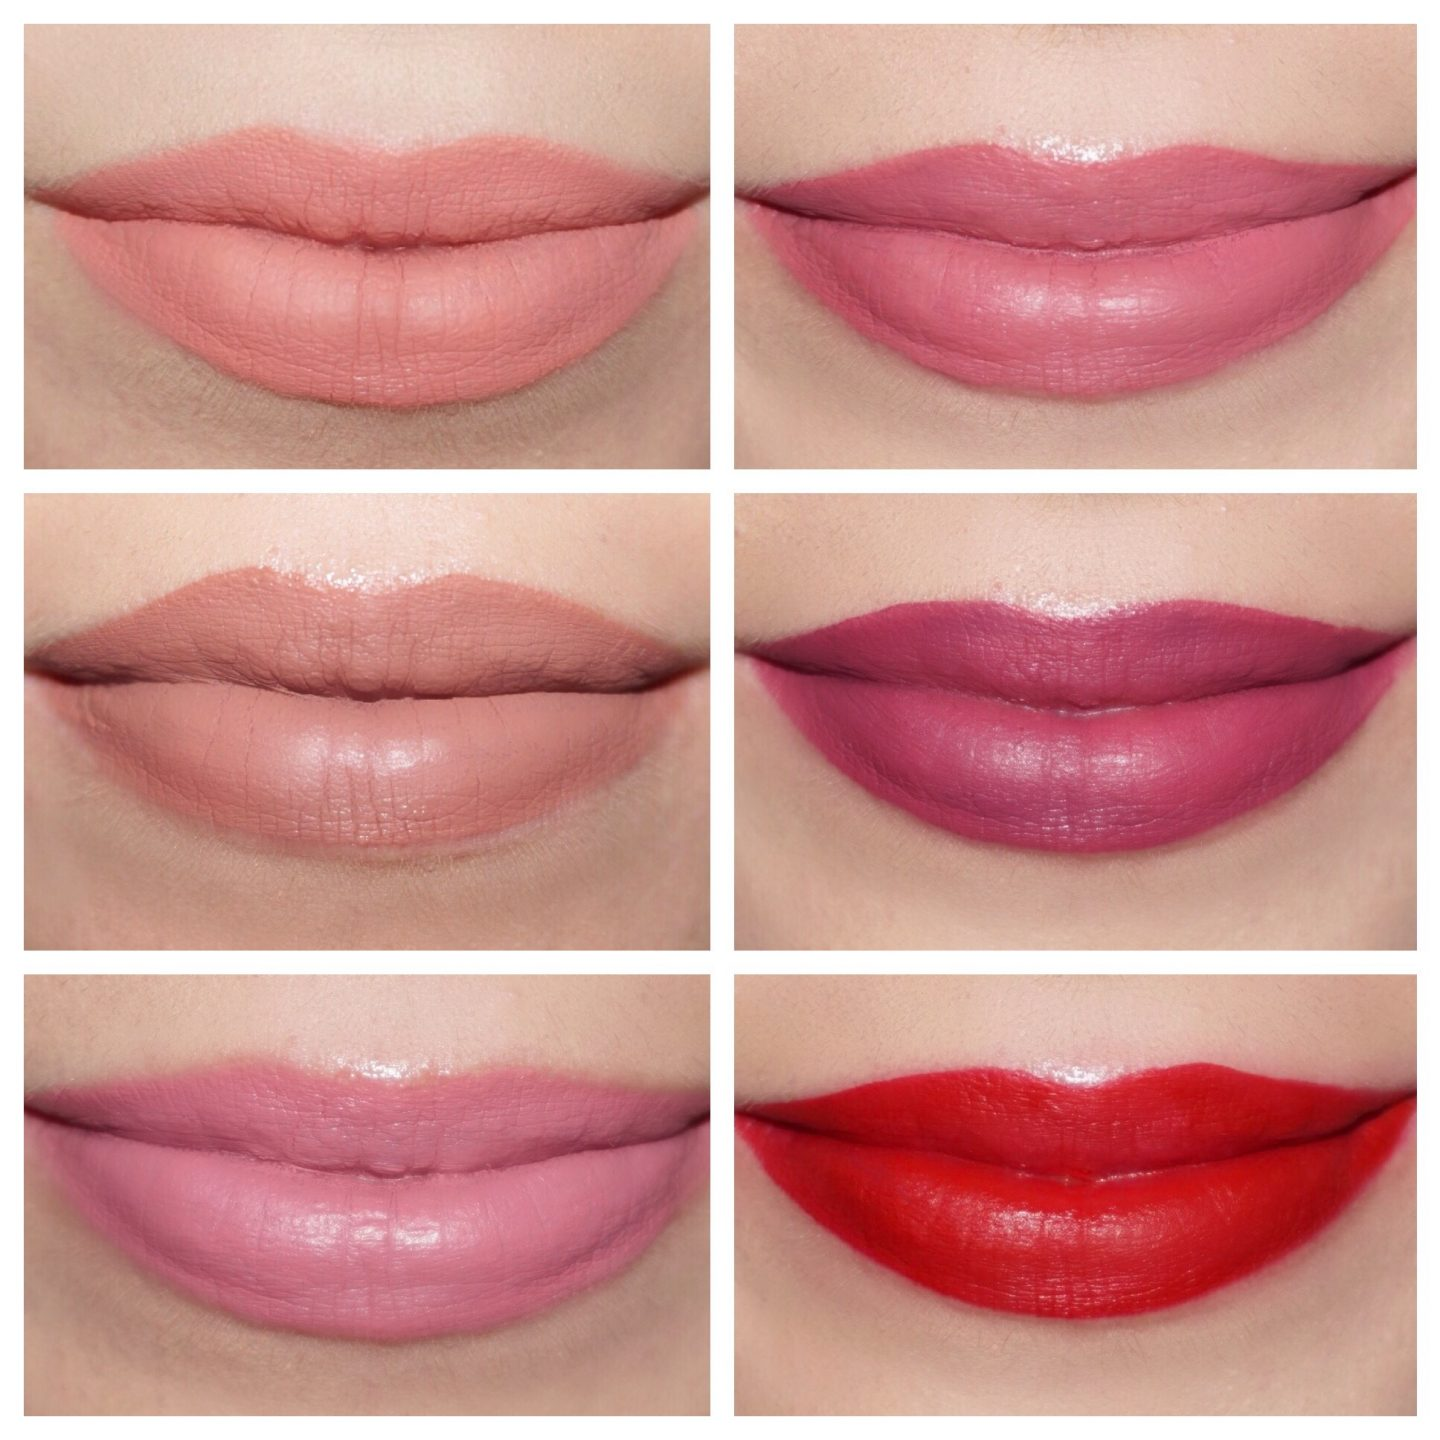 Kylie Cosmetics Valentine Collection Mini Liquid Lipstick Swatches